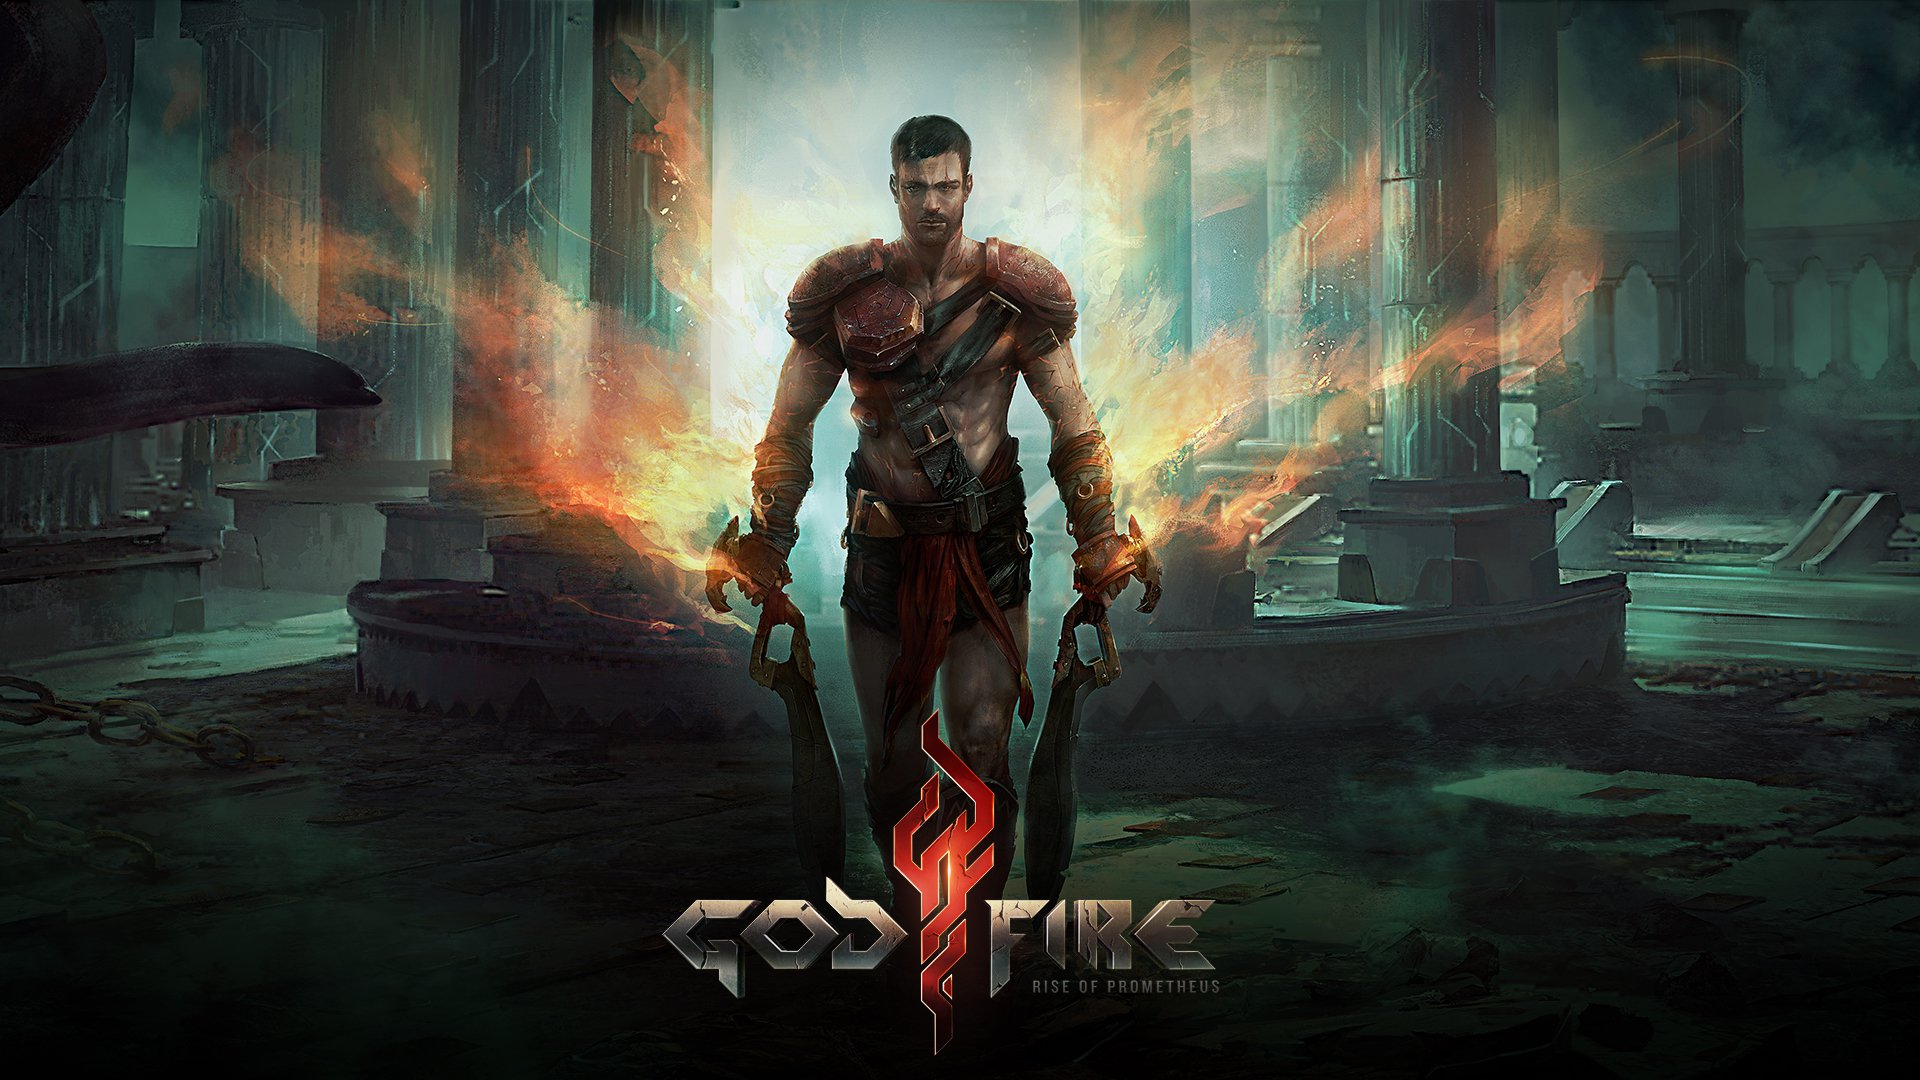 Godfire Rise Of Prometheus Hd Games 4k Wallpapers Images